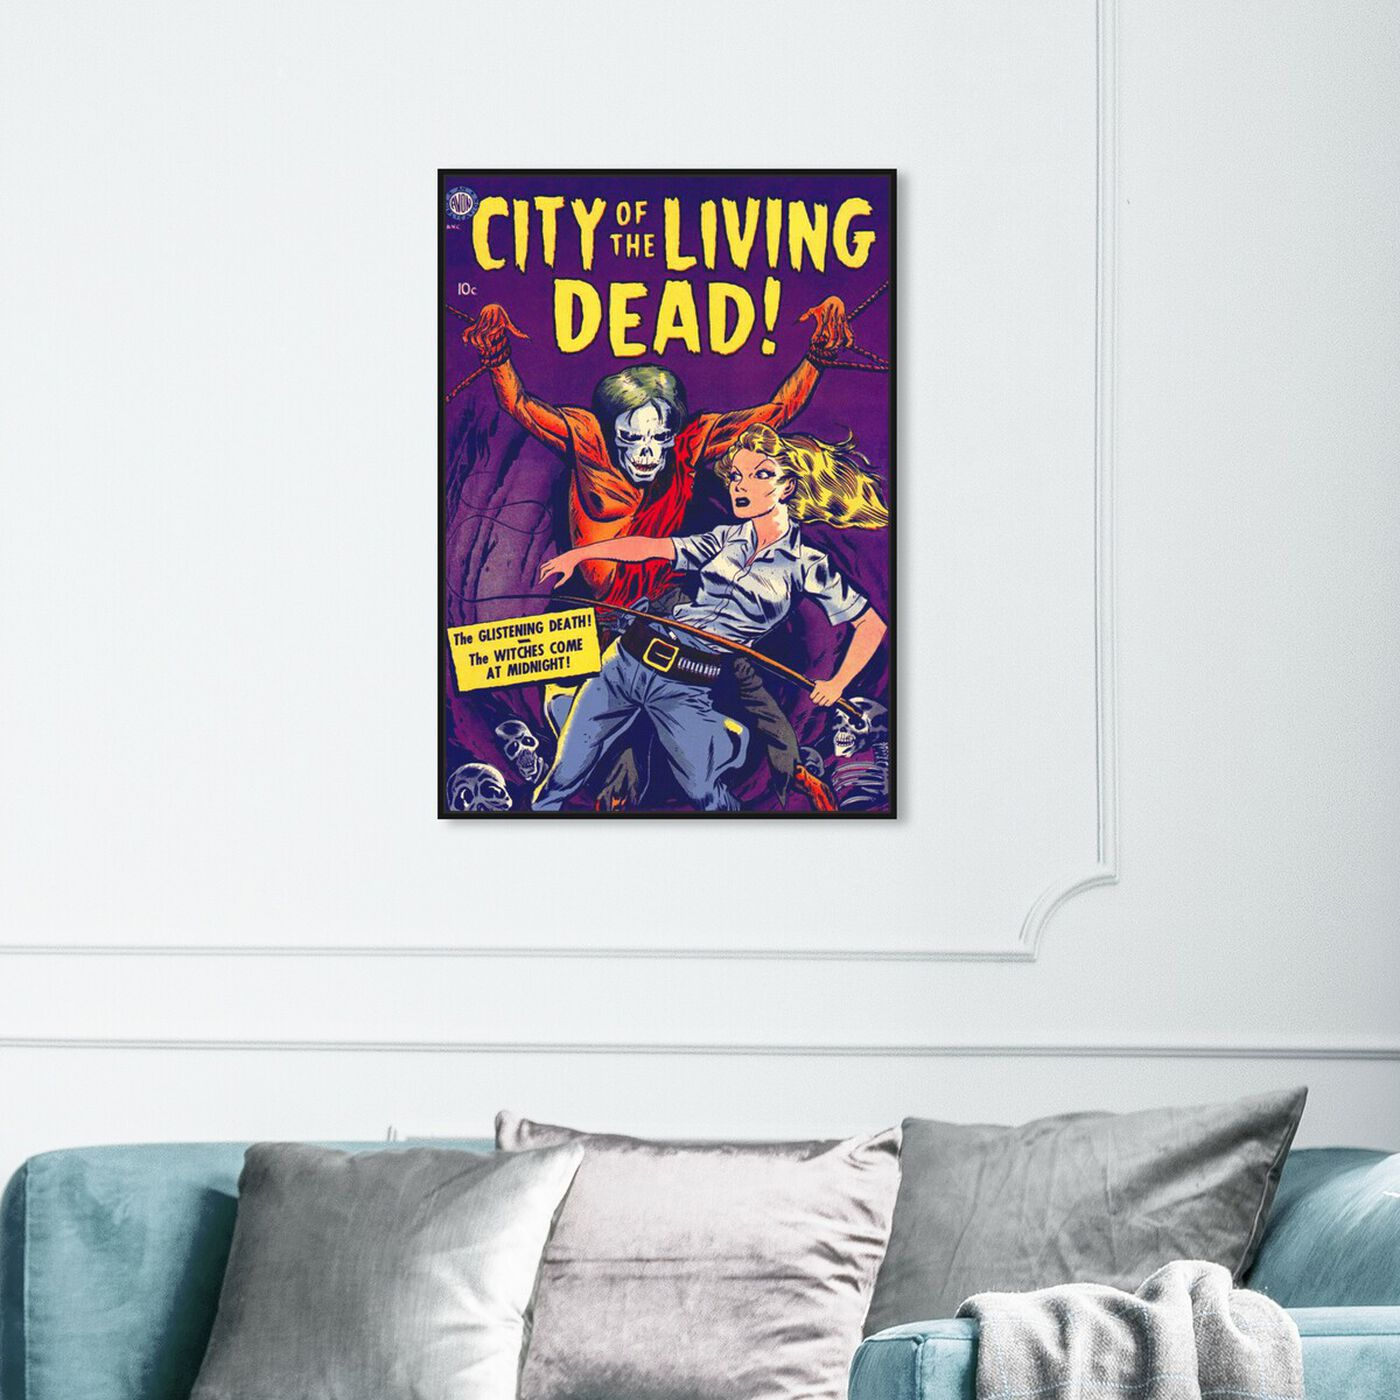 Hanging view of City Of The Living Dead featuring advertising and comics art.